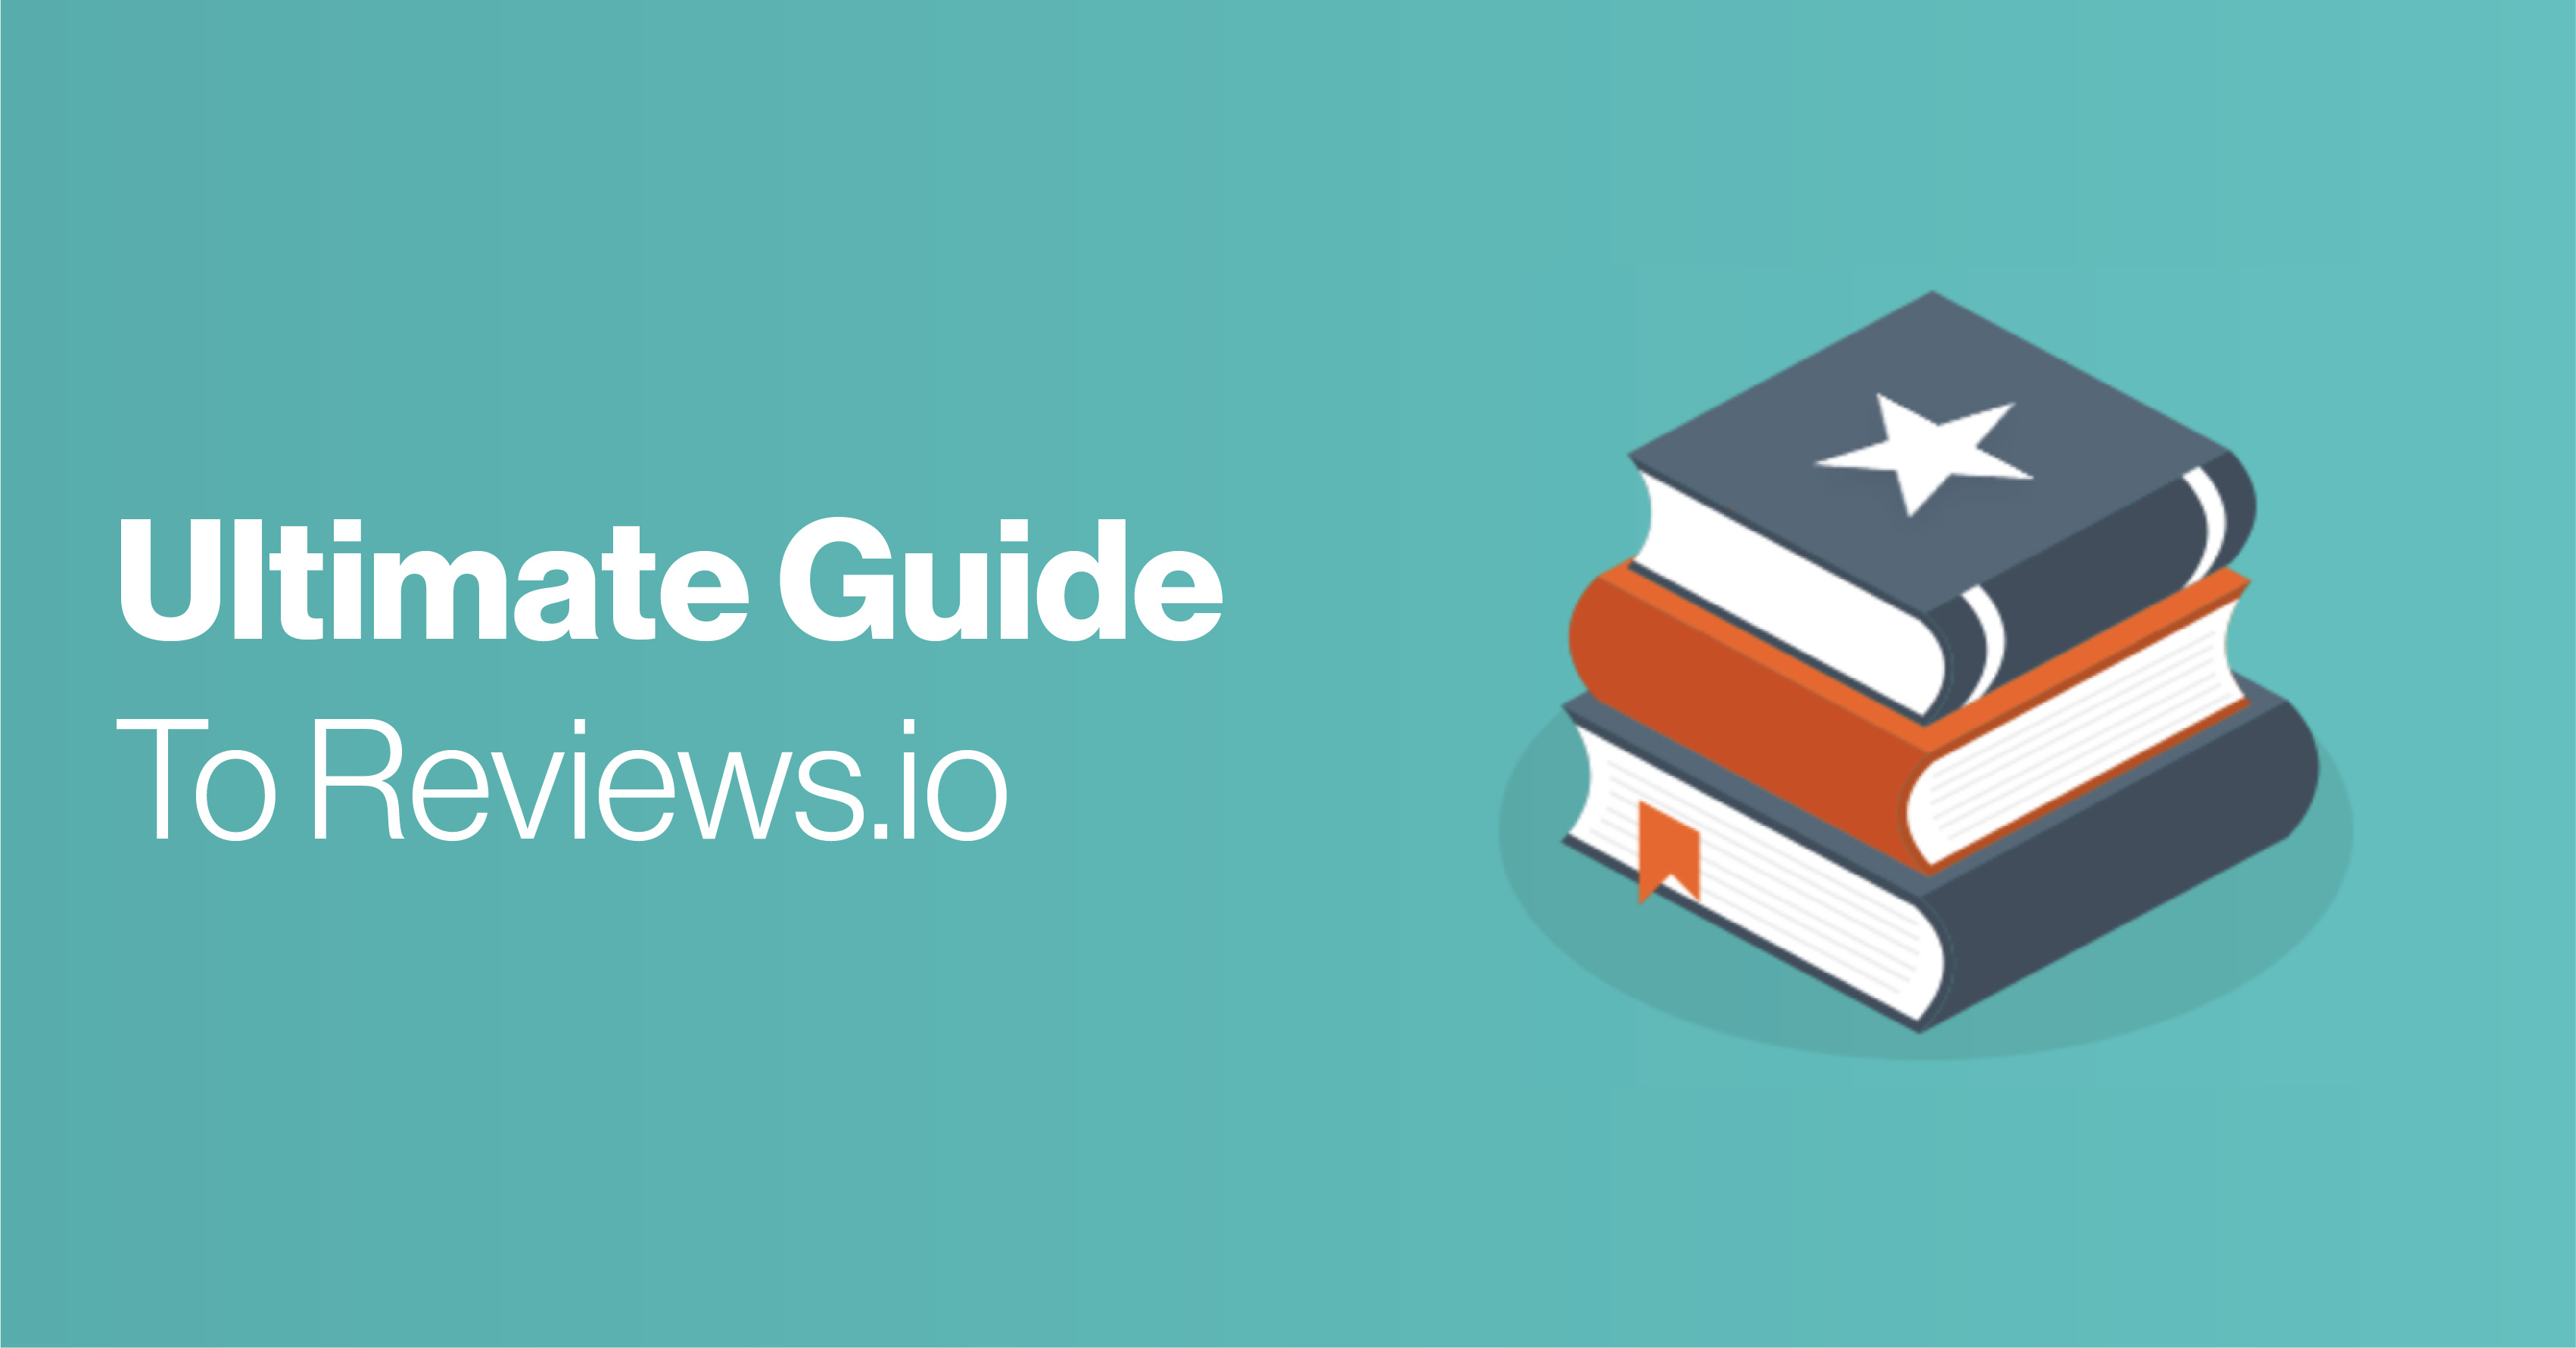 The Ultimate Guide to Reviews.io Features